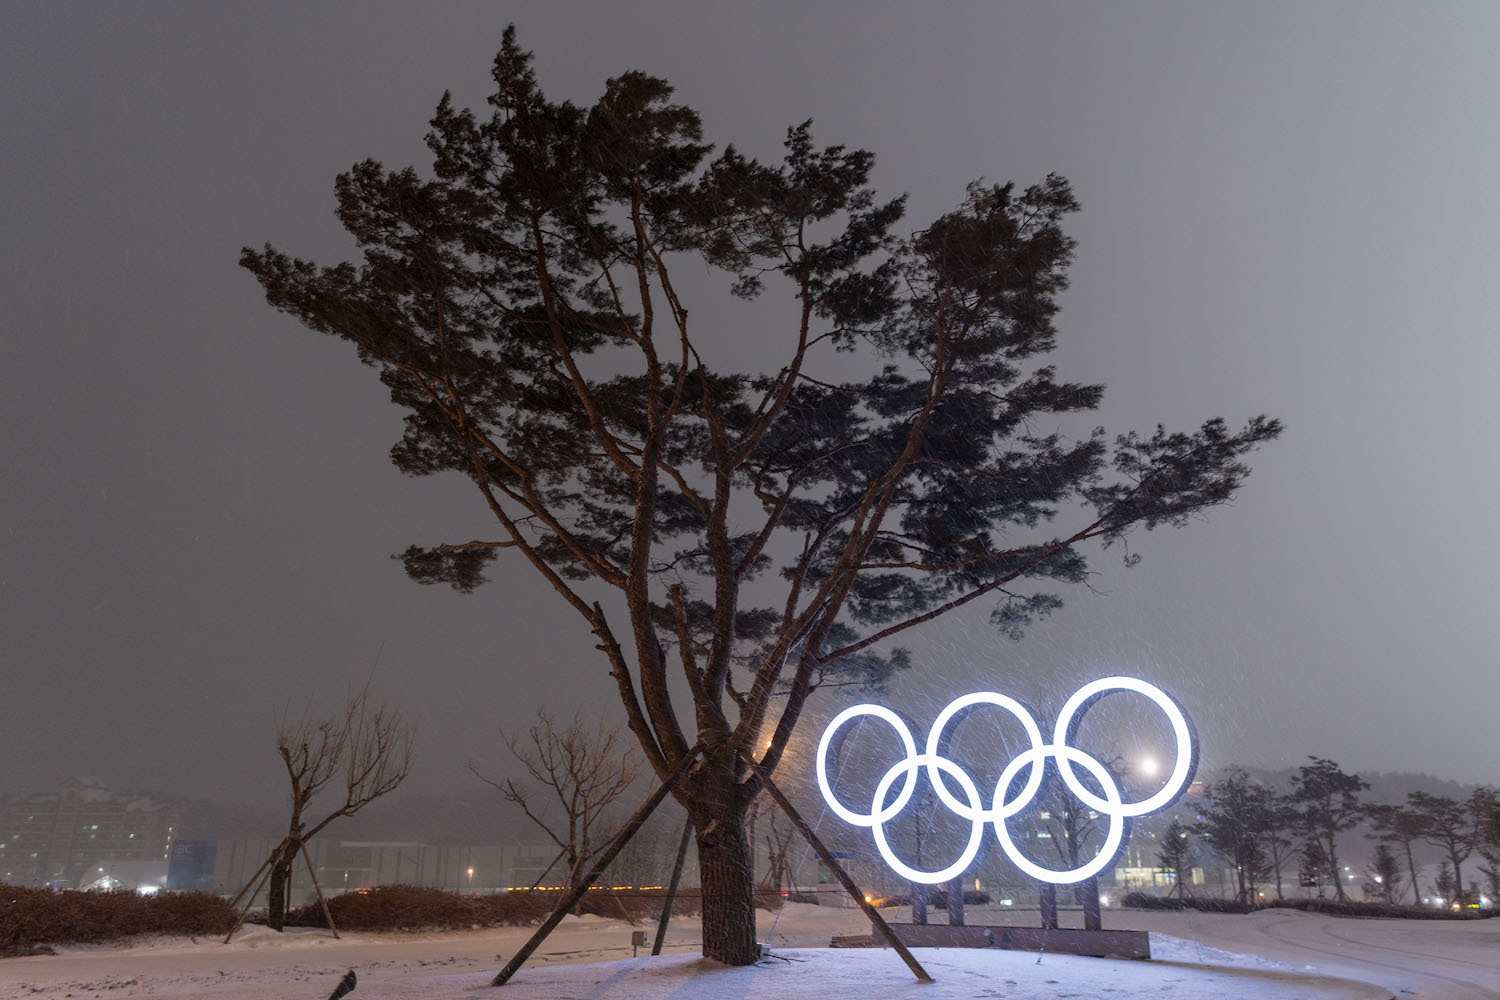 TOPSHOT - This photo taken on January 30, 2018 shows snow falling as the Olympic Rings are illuminated at night in PyeongChang ahead of the Winter Olympic Games. The 2018 Winter Olympic Games in South Korea will take place from February 9 to 25. / AFP PHOTO / François-Xavier MARIT        (Photo credit should read FRANCOIS-XAVIER MARIT/AFP/Getty Images)